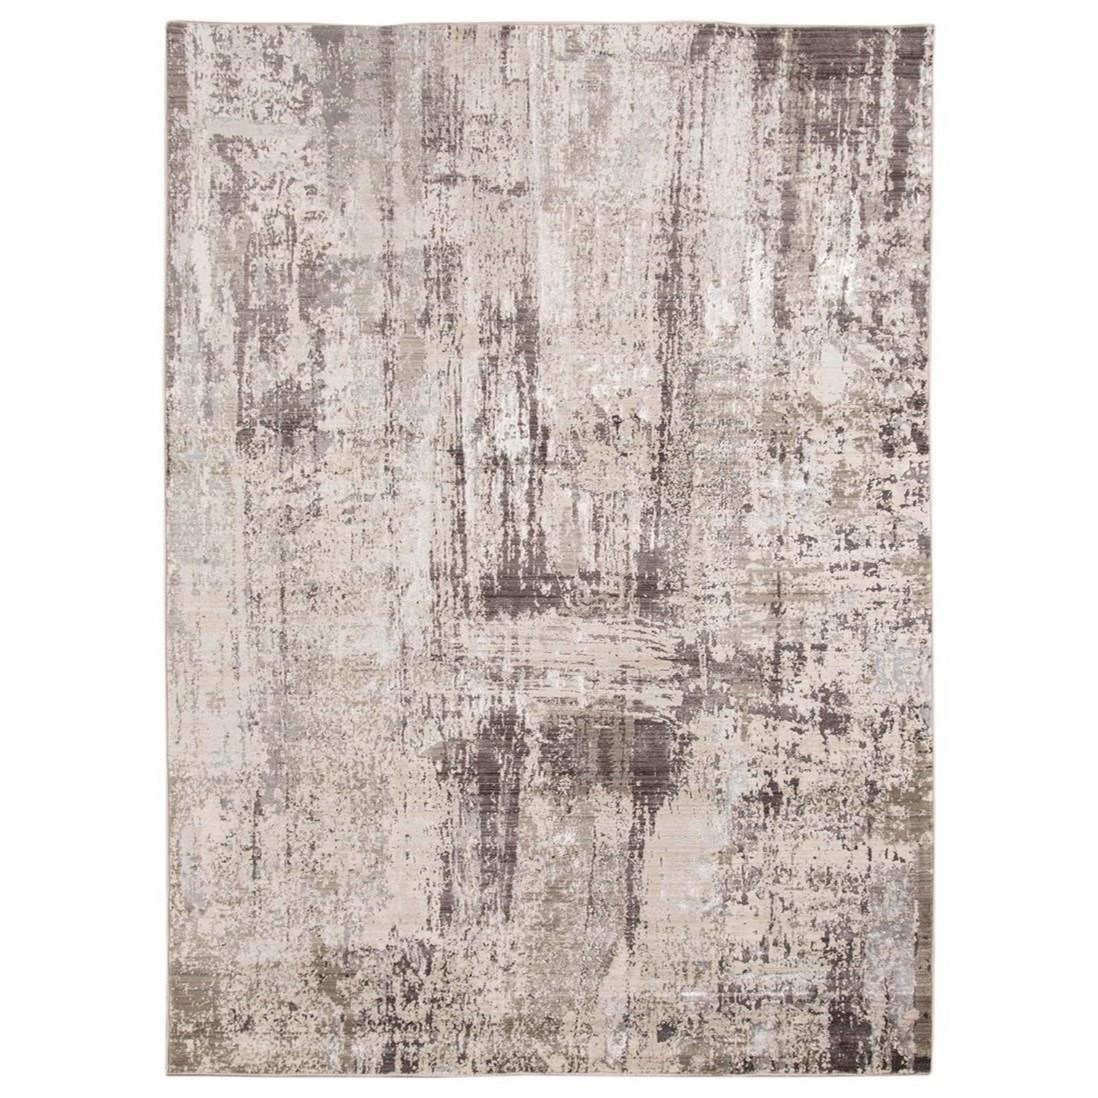 Rugs Cameri Silver 7 X 10 Rug by Uttermost at Adcock Furniture